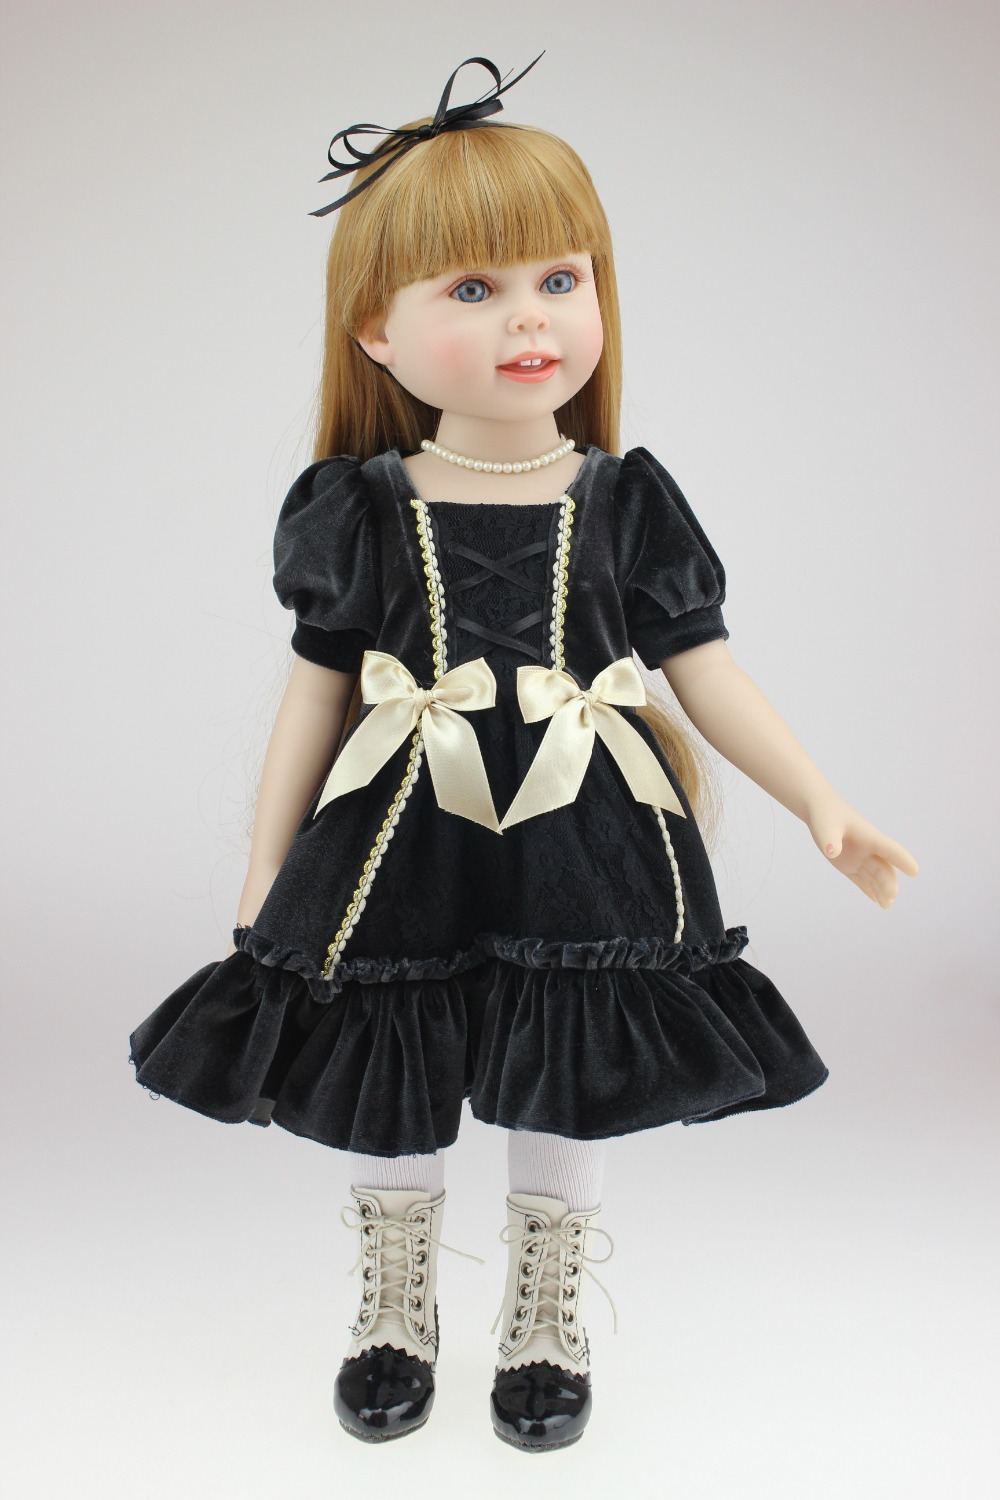 5481b33ea59 New design 18inches American girl doll Journey Girl Dollie  me fashion doll  New Year present great girl gift